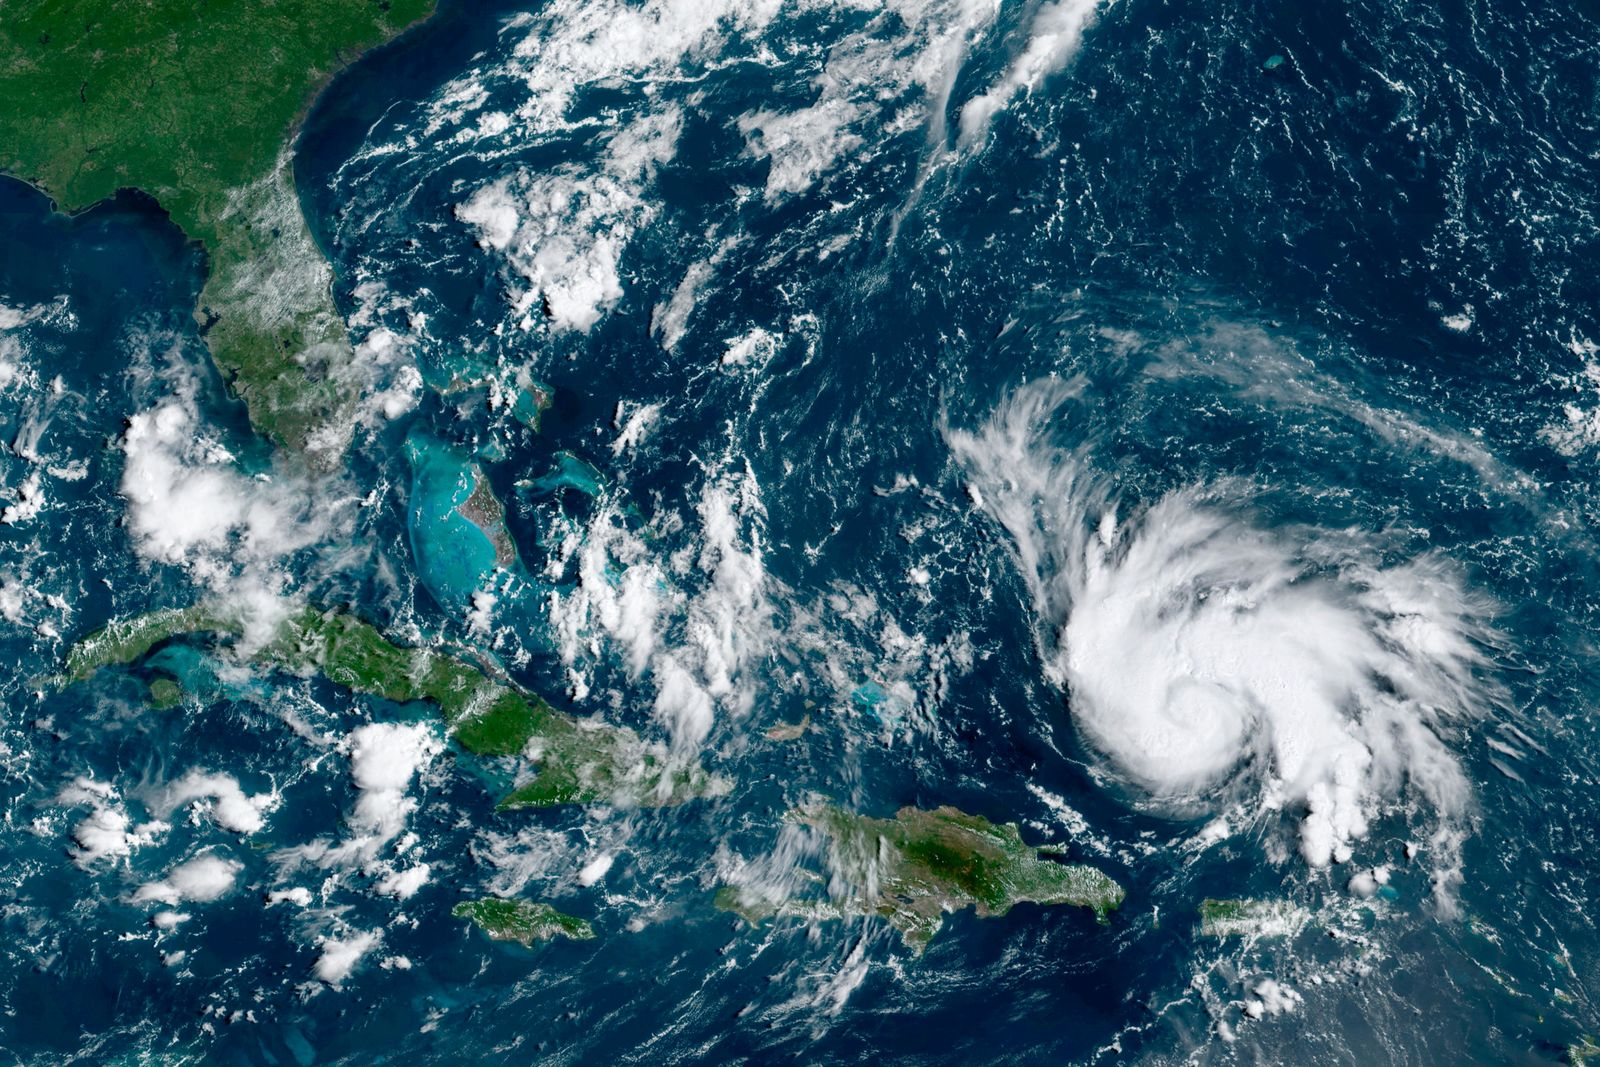 This GOES-16 satellite image taken Thursday, Aug. 29, 2019, at 14:20 UTC and provided by National Oceanic and Atmospheric Administration (NOAA), shows Hurricane Dorian, right, moving over open waters of the Atlantic Ocean. The U.S. National Hurricane Center said Dorian was expected to grow into a potentially devastating Category 3 hurricane before hitting the U.S. mainland late Sunday or early Monday somewhere between the Florida Keys and southern Georgia.  (NOAA via AP)